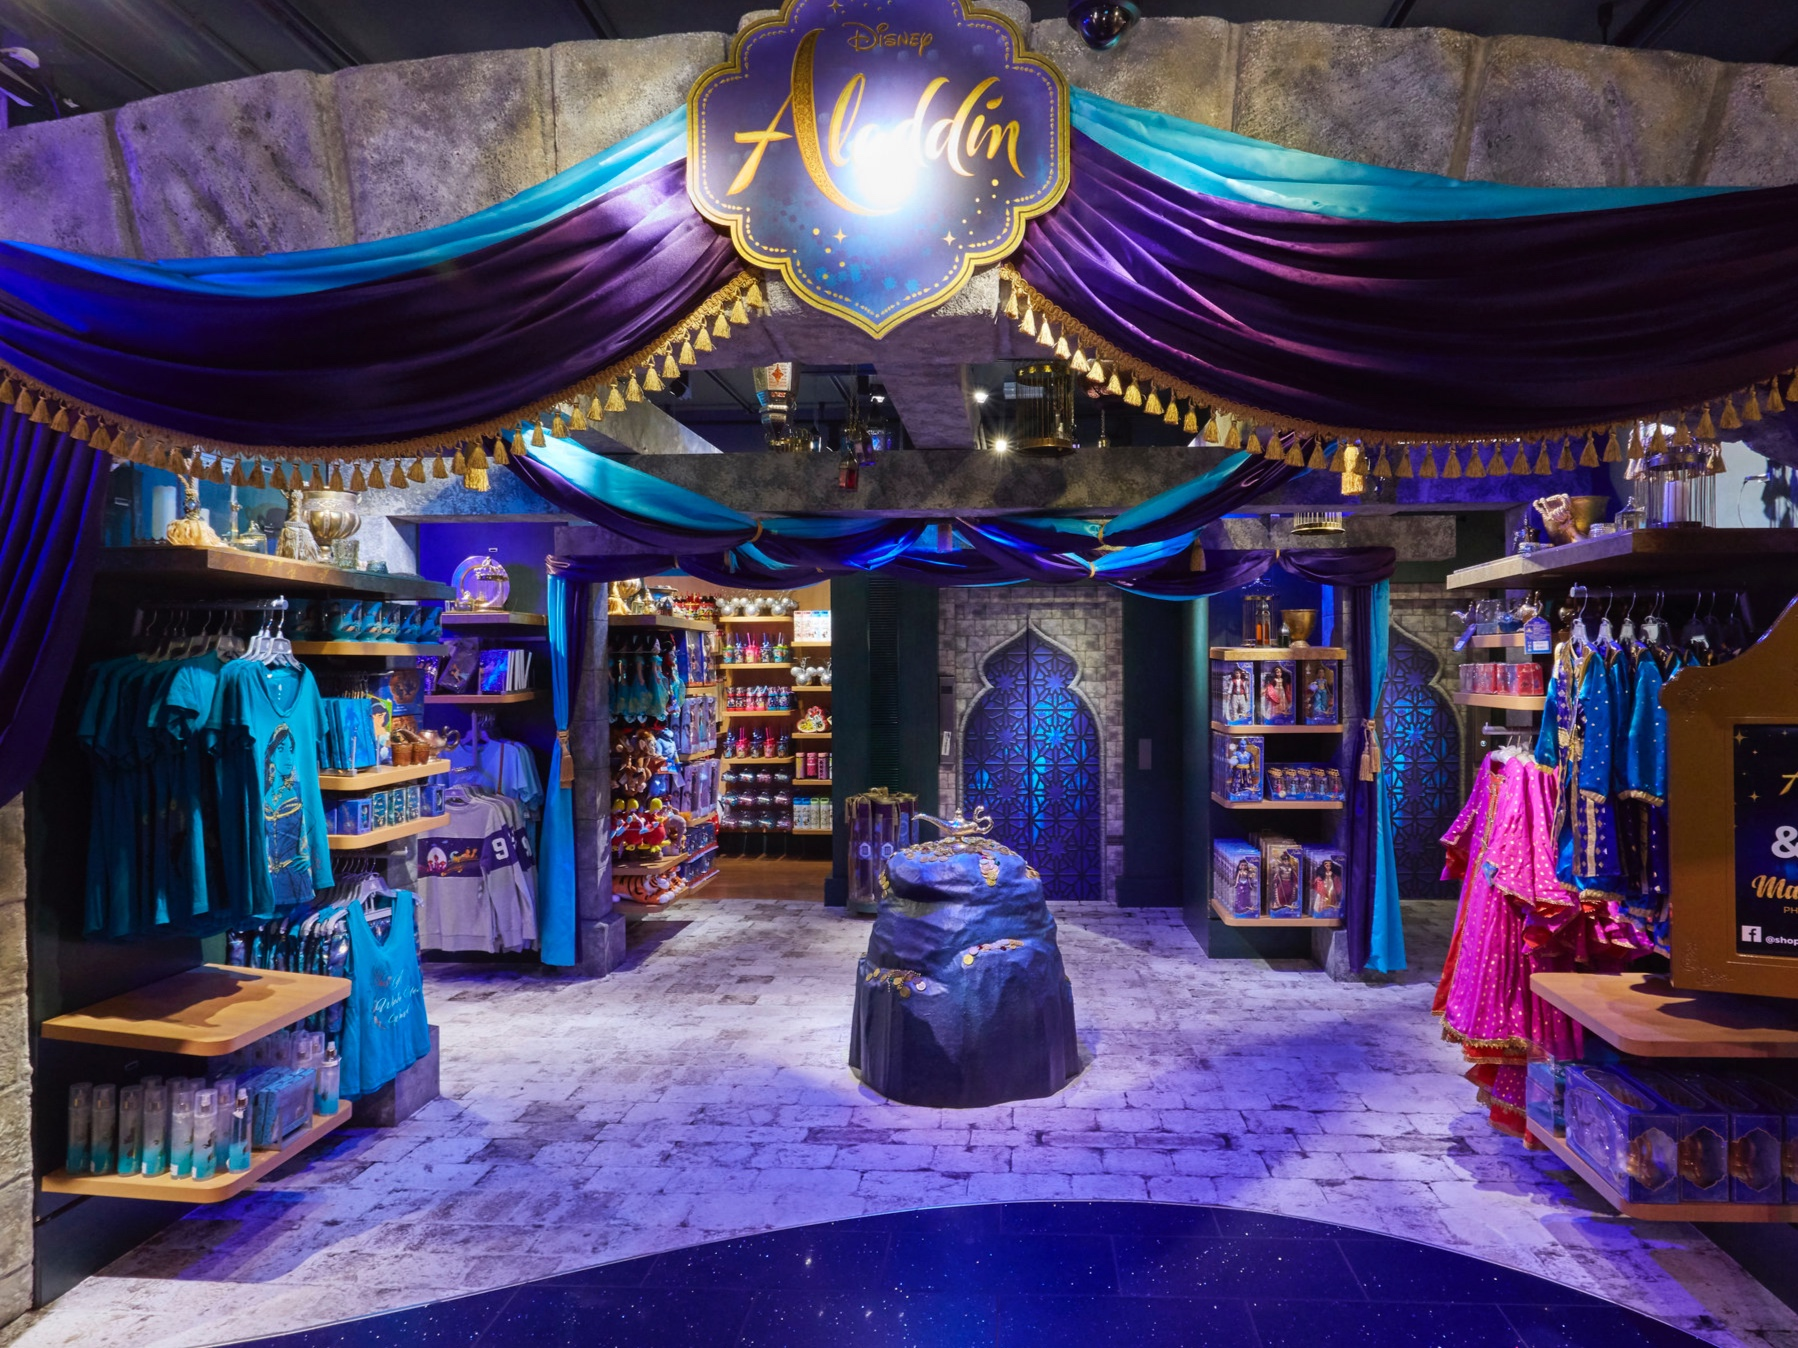 ALADDIN - DISNEY STORE, LONDON    May 2019